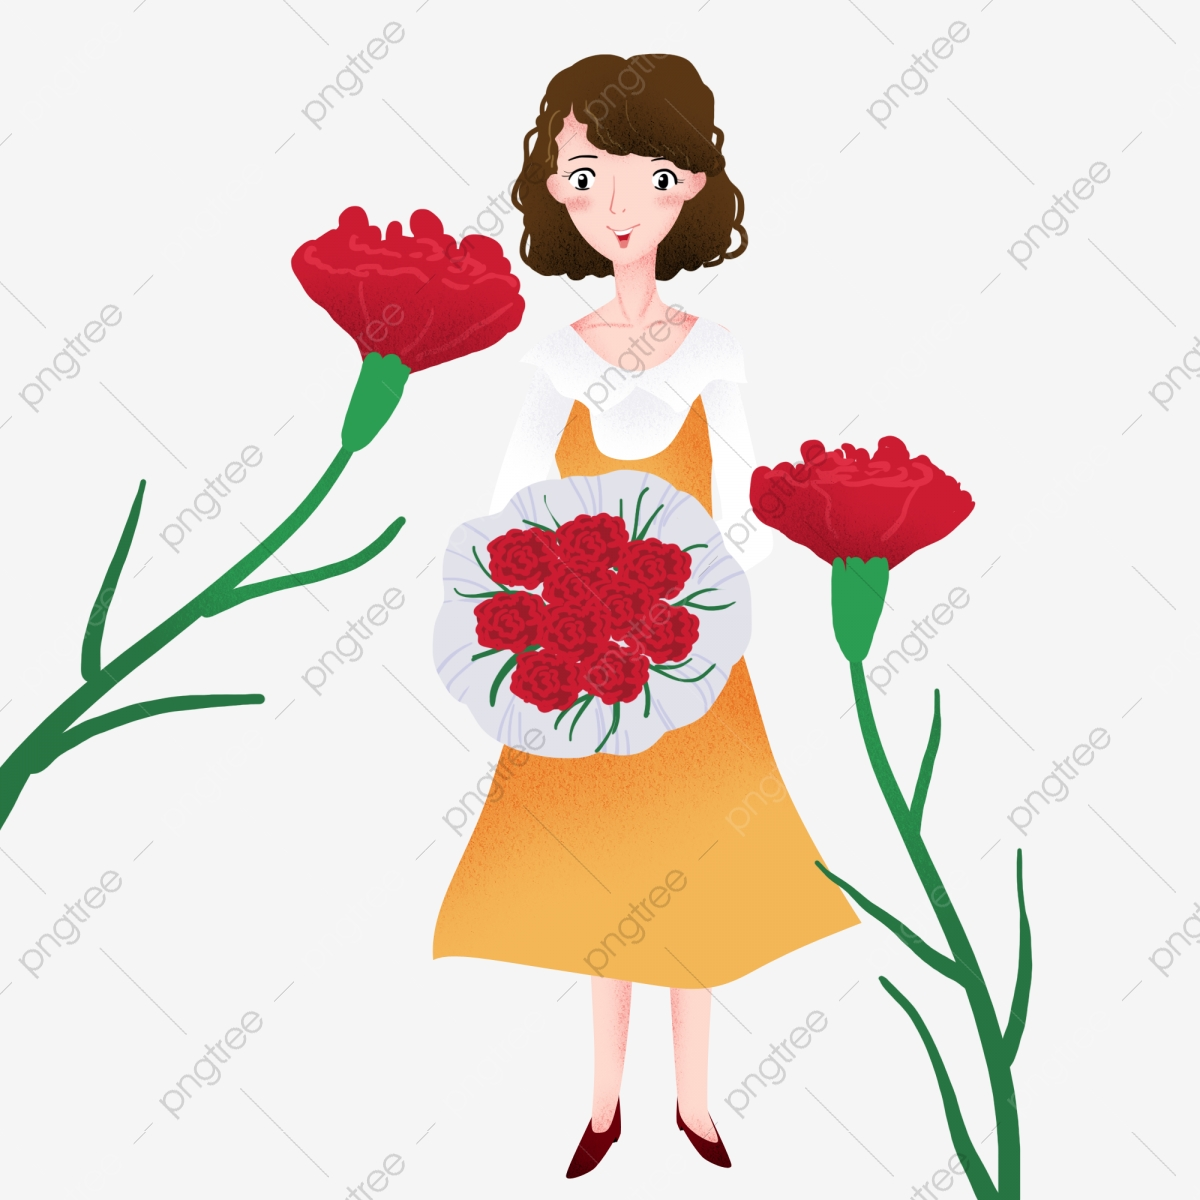 Flower Bouquet Clipart Png Images Vector And Psd Files Free Download On Pngtree